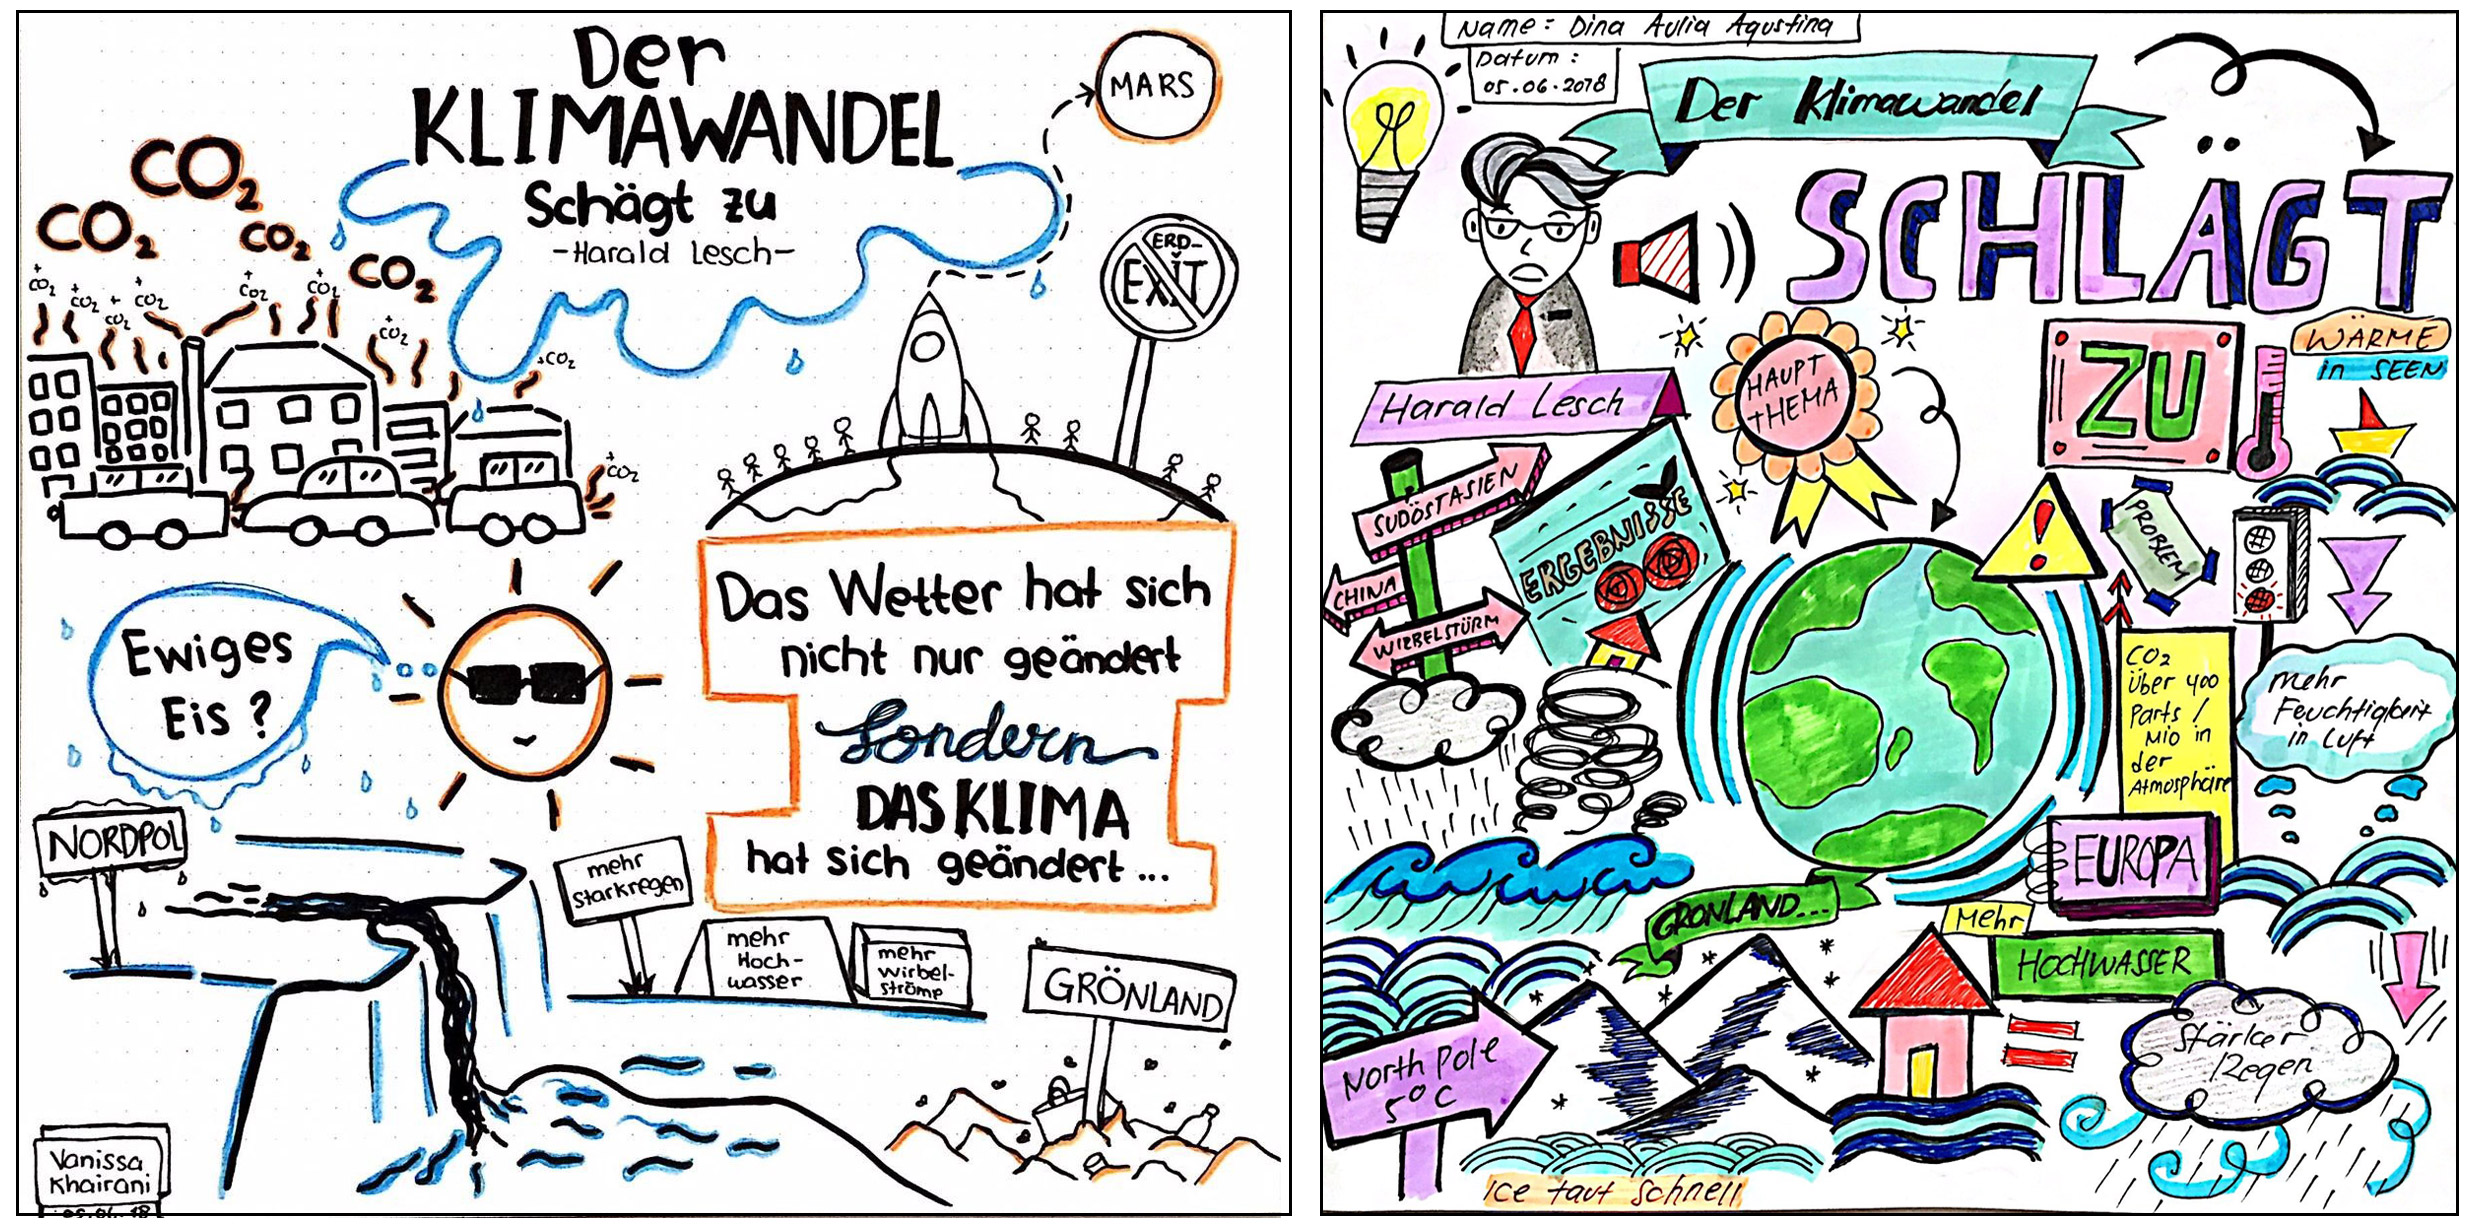 Fig. 5 Sketchnotes from a video by Harald Lesch about climate change.